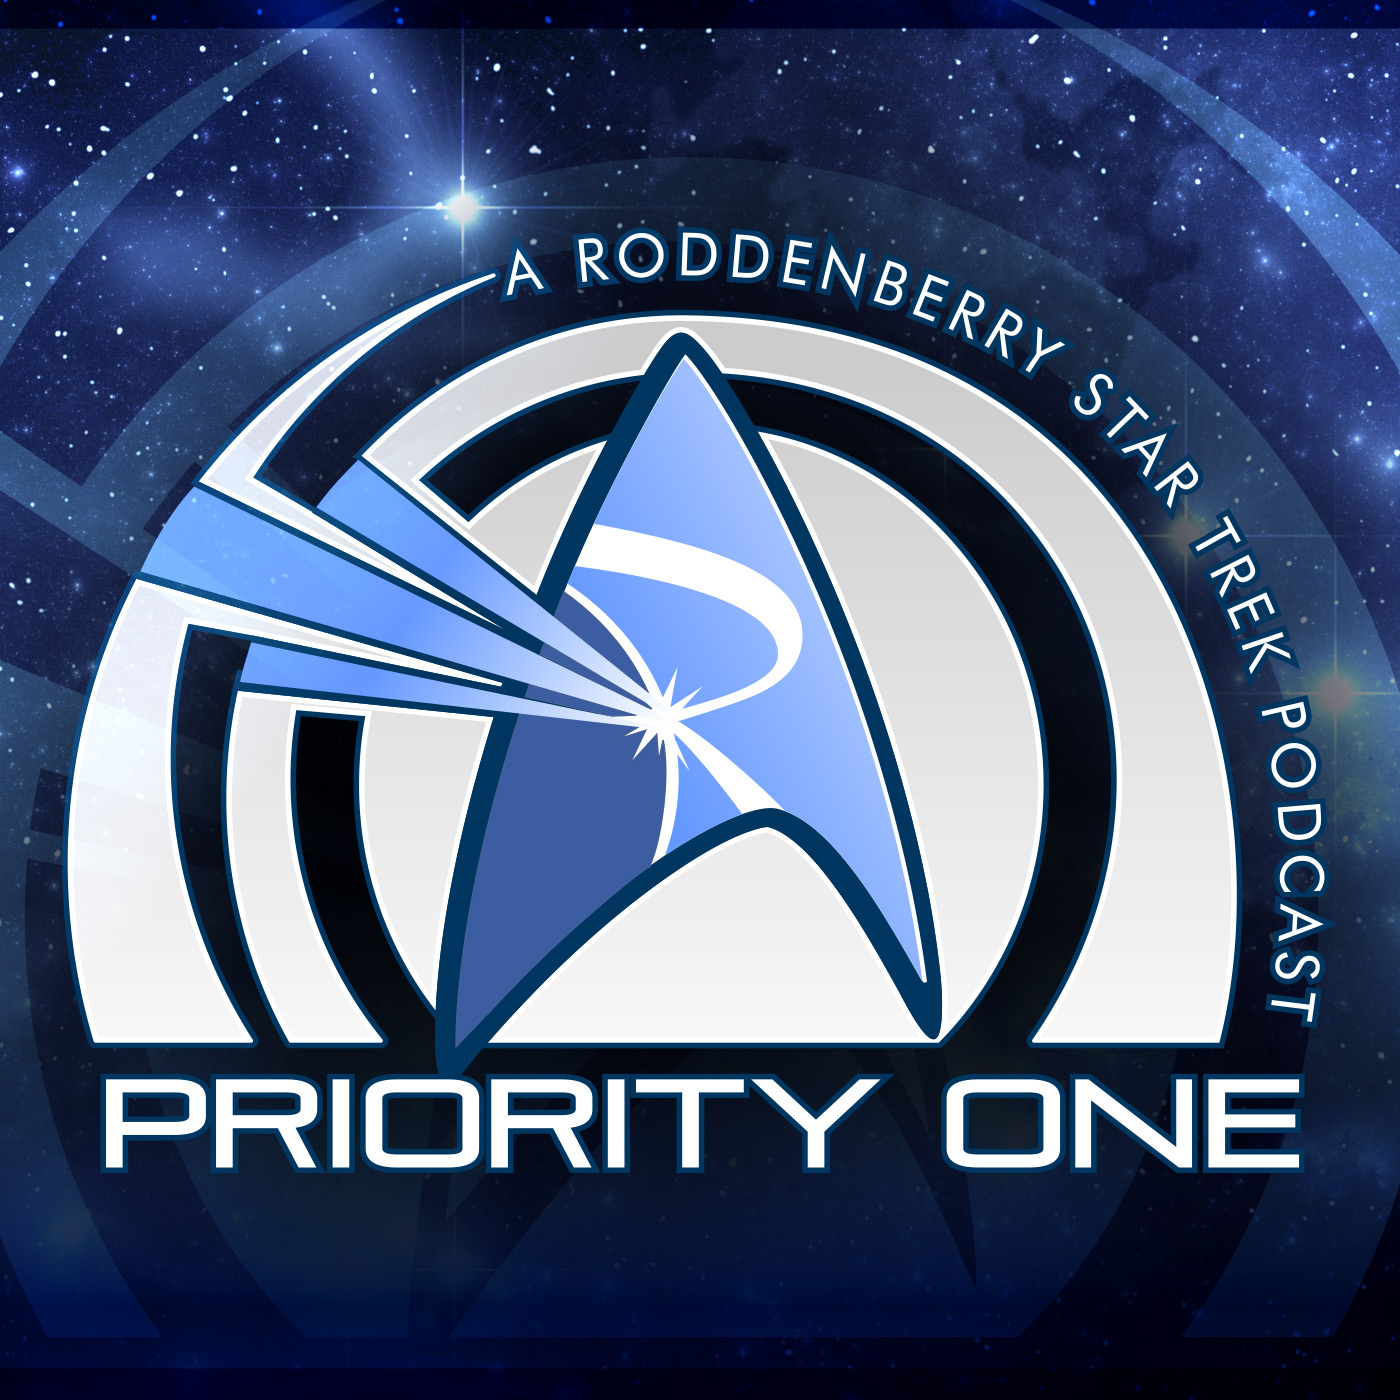 Artwork for 408 - Time Crystal Ball | Priority One: A Roddenberry Star Trek Podcast